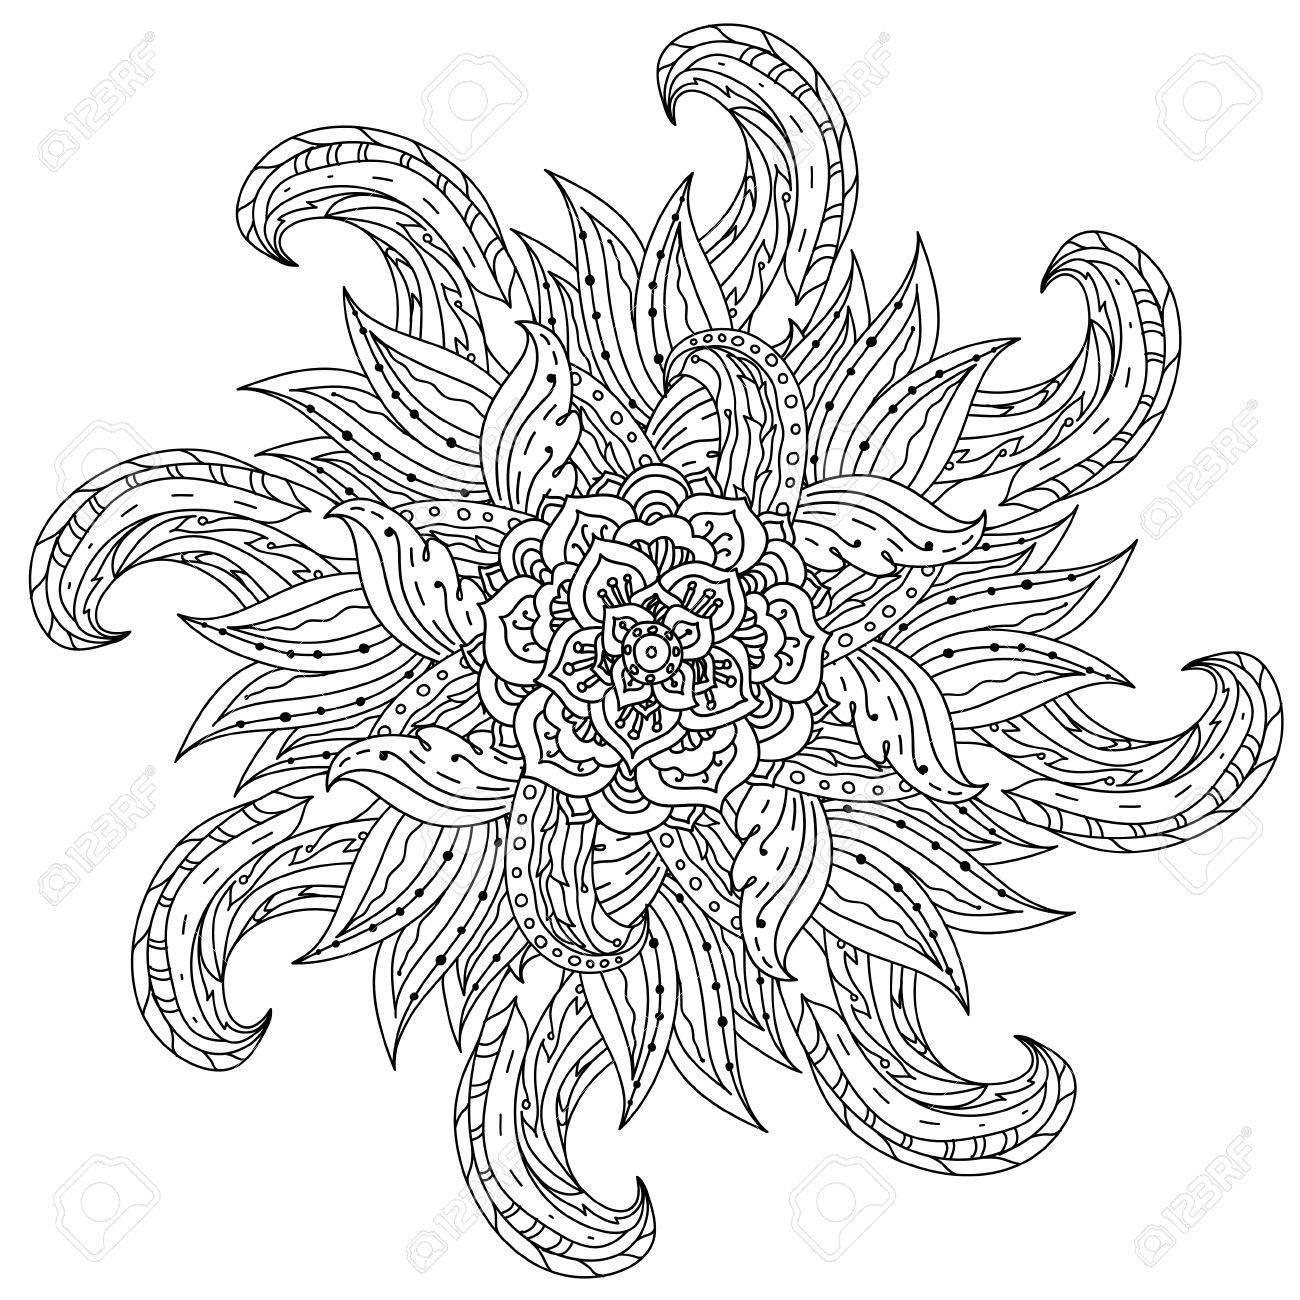 Contoured Mandala Shape Flowers For Adult Coloring Book In Zen ...